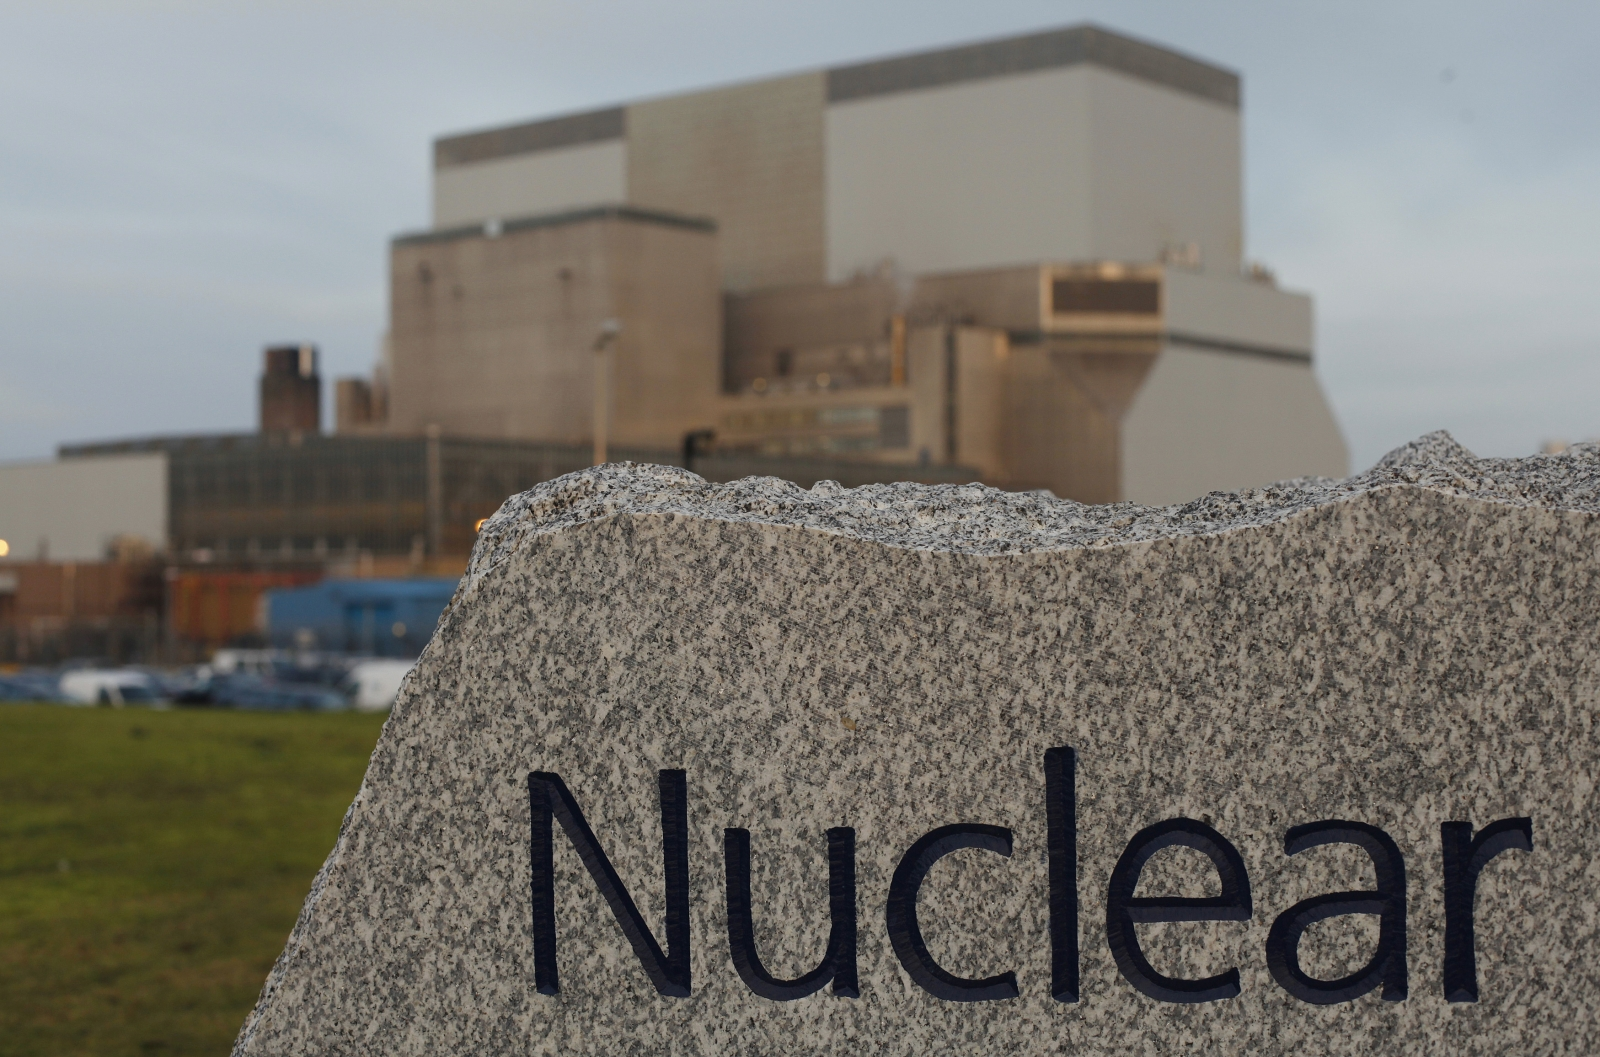 Hinkley C finally gets green light after 'revised agreement' with EDF